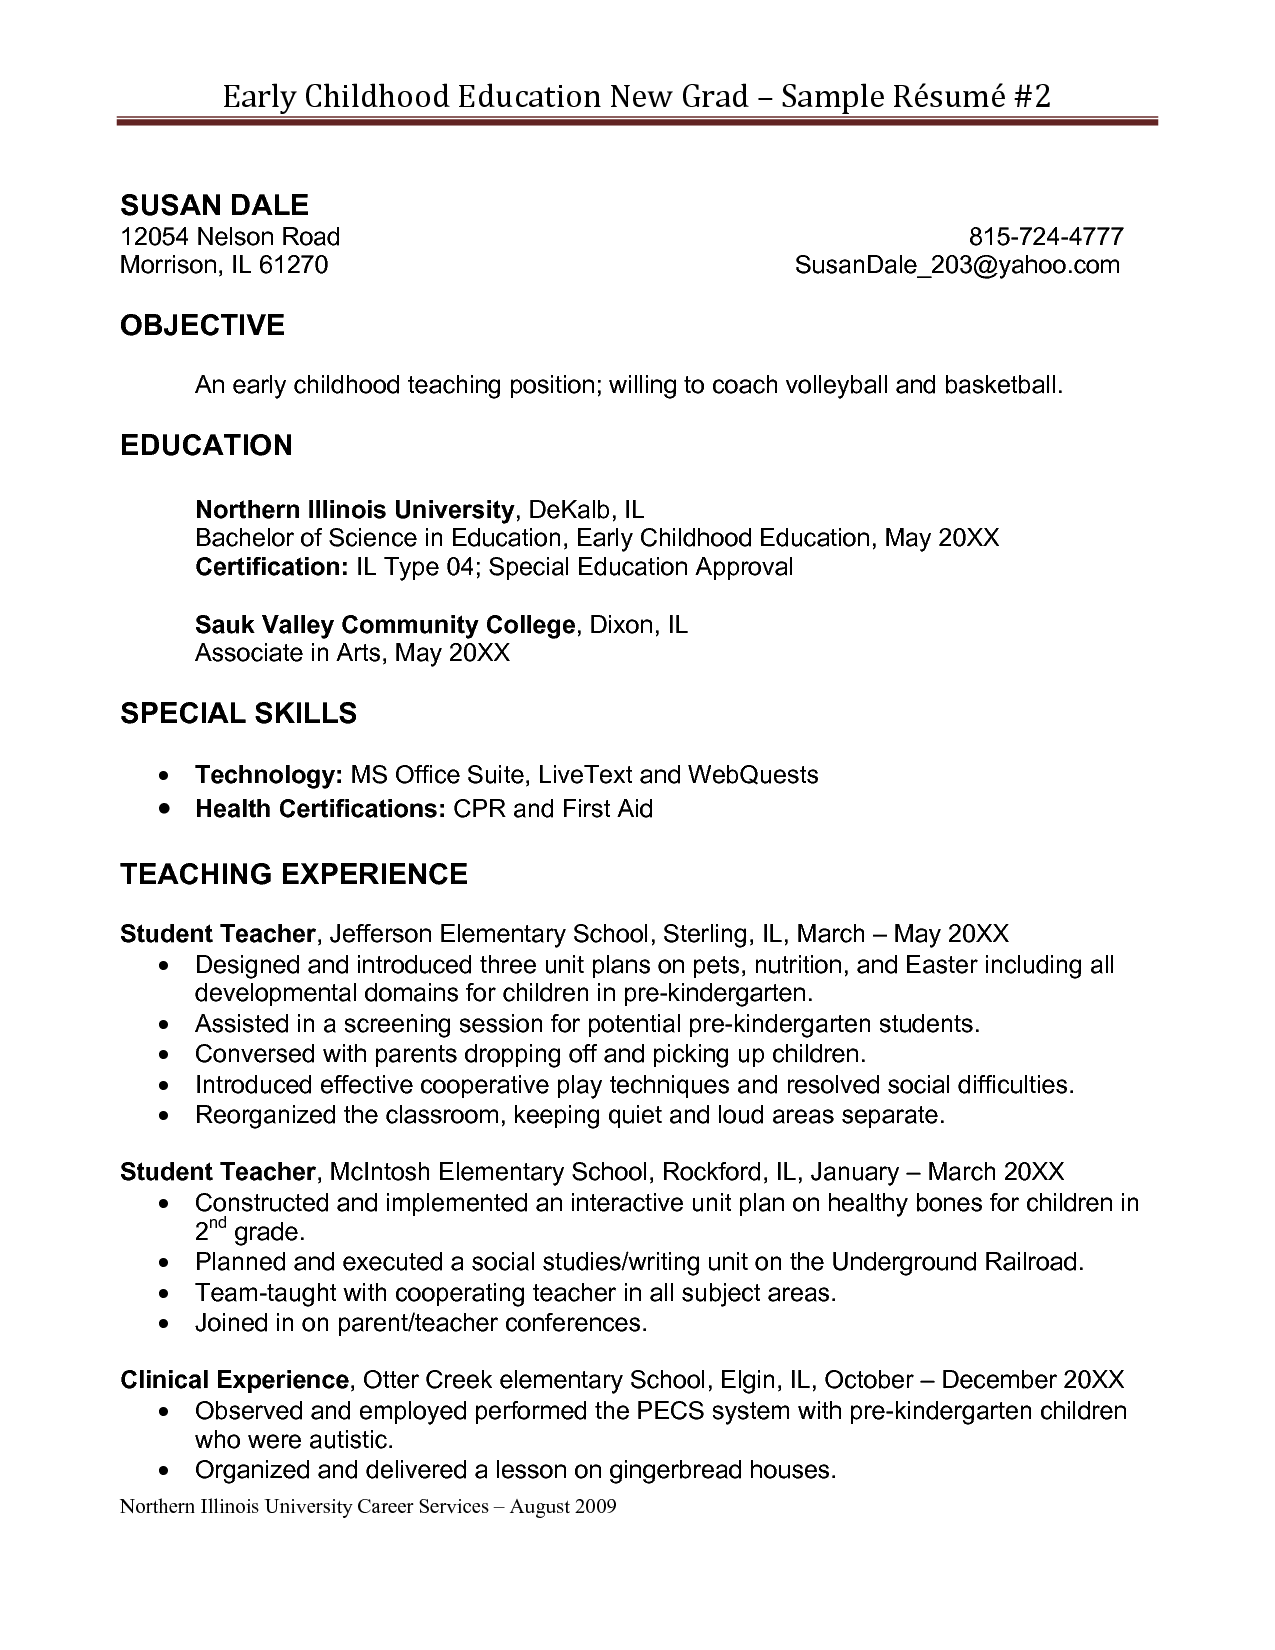 early childhood education resume objective | college | pinterest